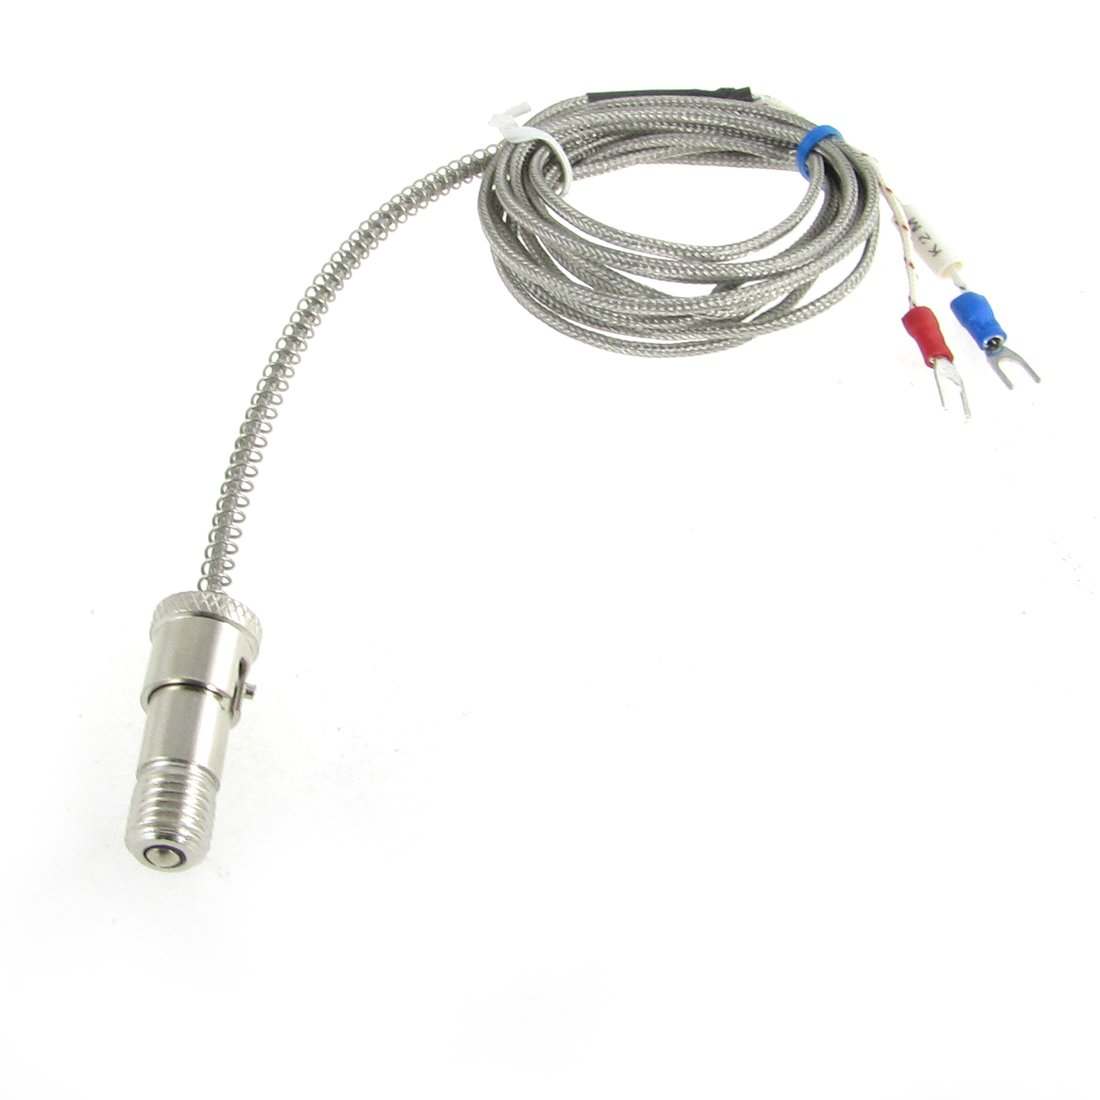 K Type 0-400C Spring Loaded Bayonet Thermocouple Sensor 2M 2000 1850m wrn 230 k type fabricated thermocouple industrial temperature sensor with screw